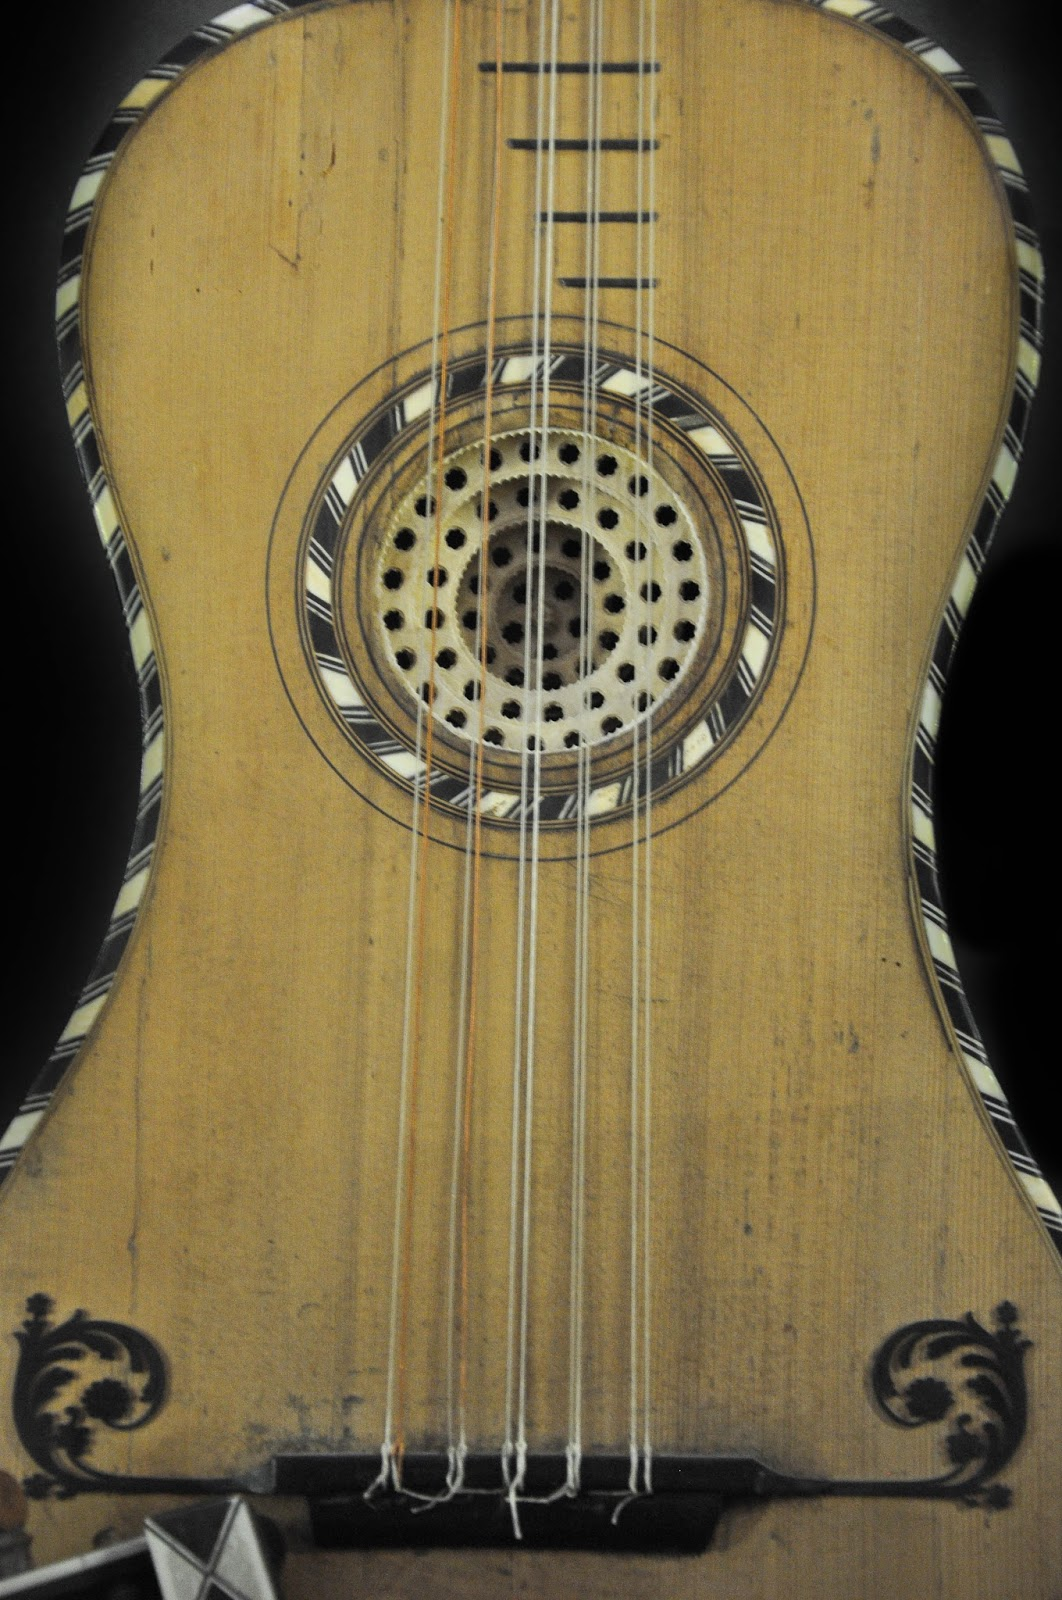 A close-up of a guitar from 1750, Museum of the Music, Venice, Italy